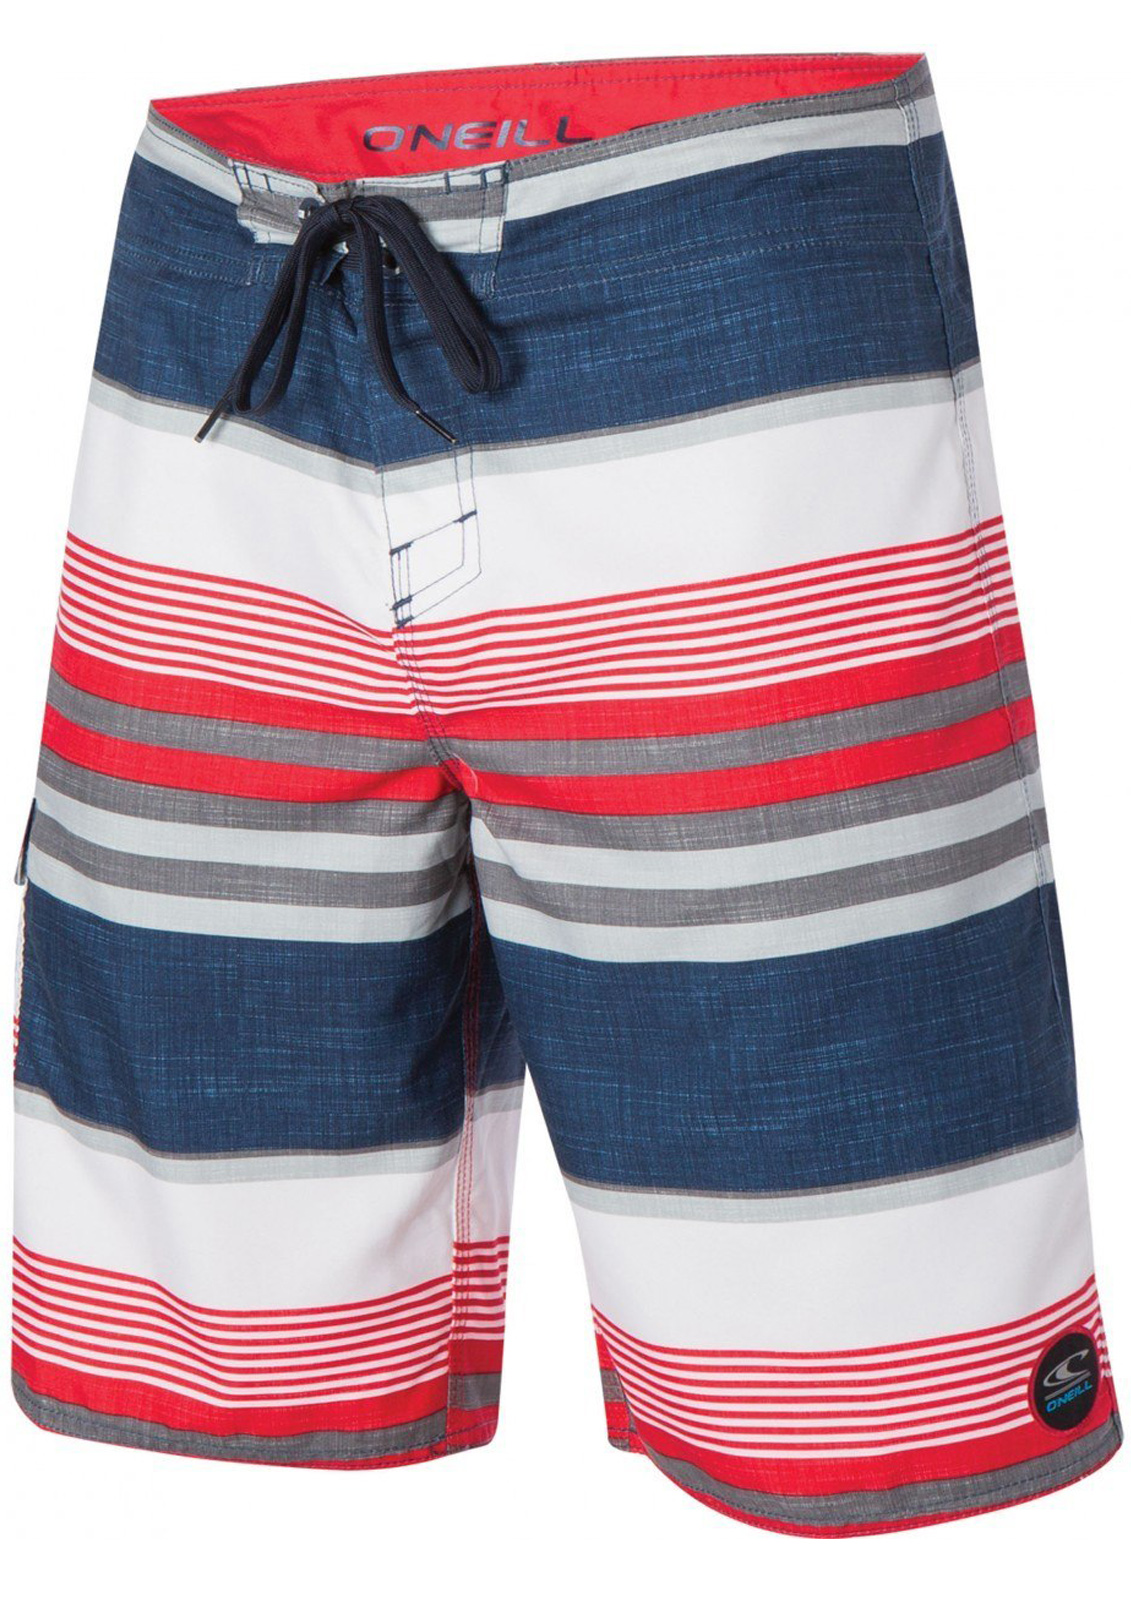 hispanic single men in oneill Shop for o'neill men's rashguards at rei - free shipping with $50 minimum purchase top quality, great selection and expert advice you can trust 100% satisfaction guarantee.